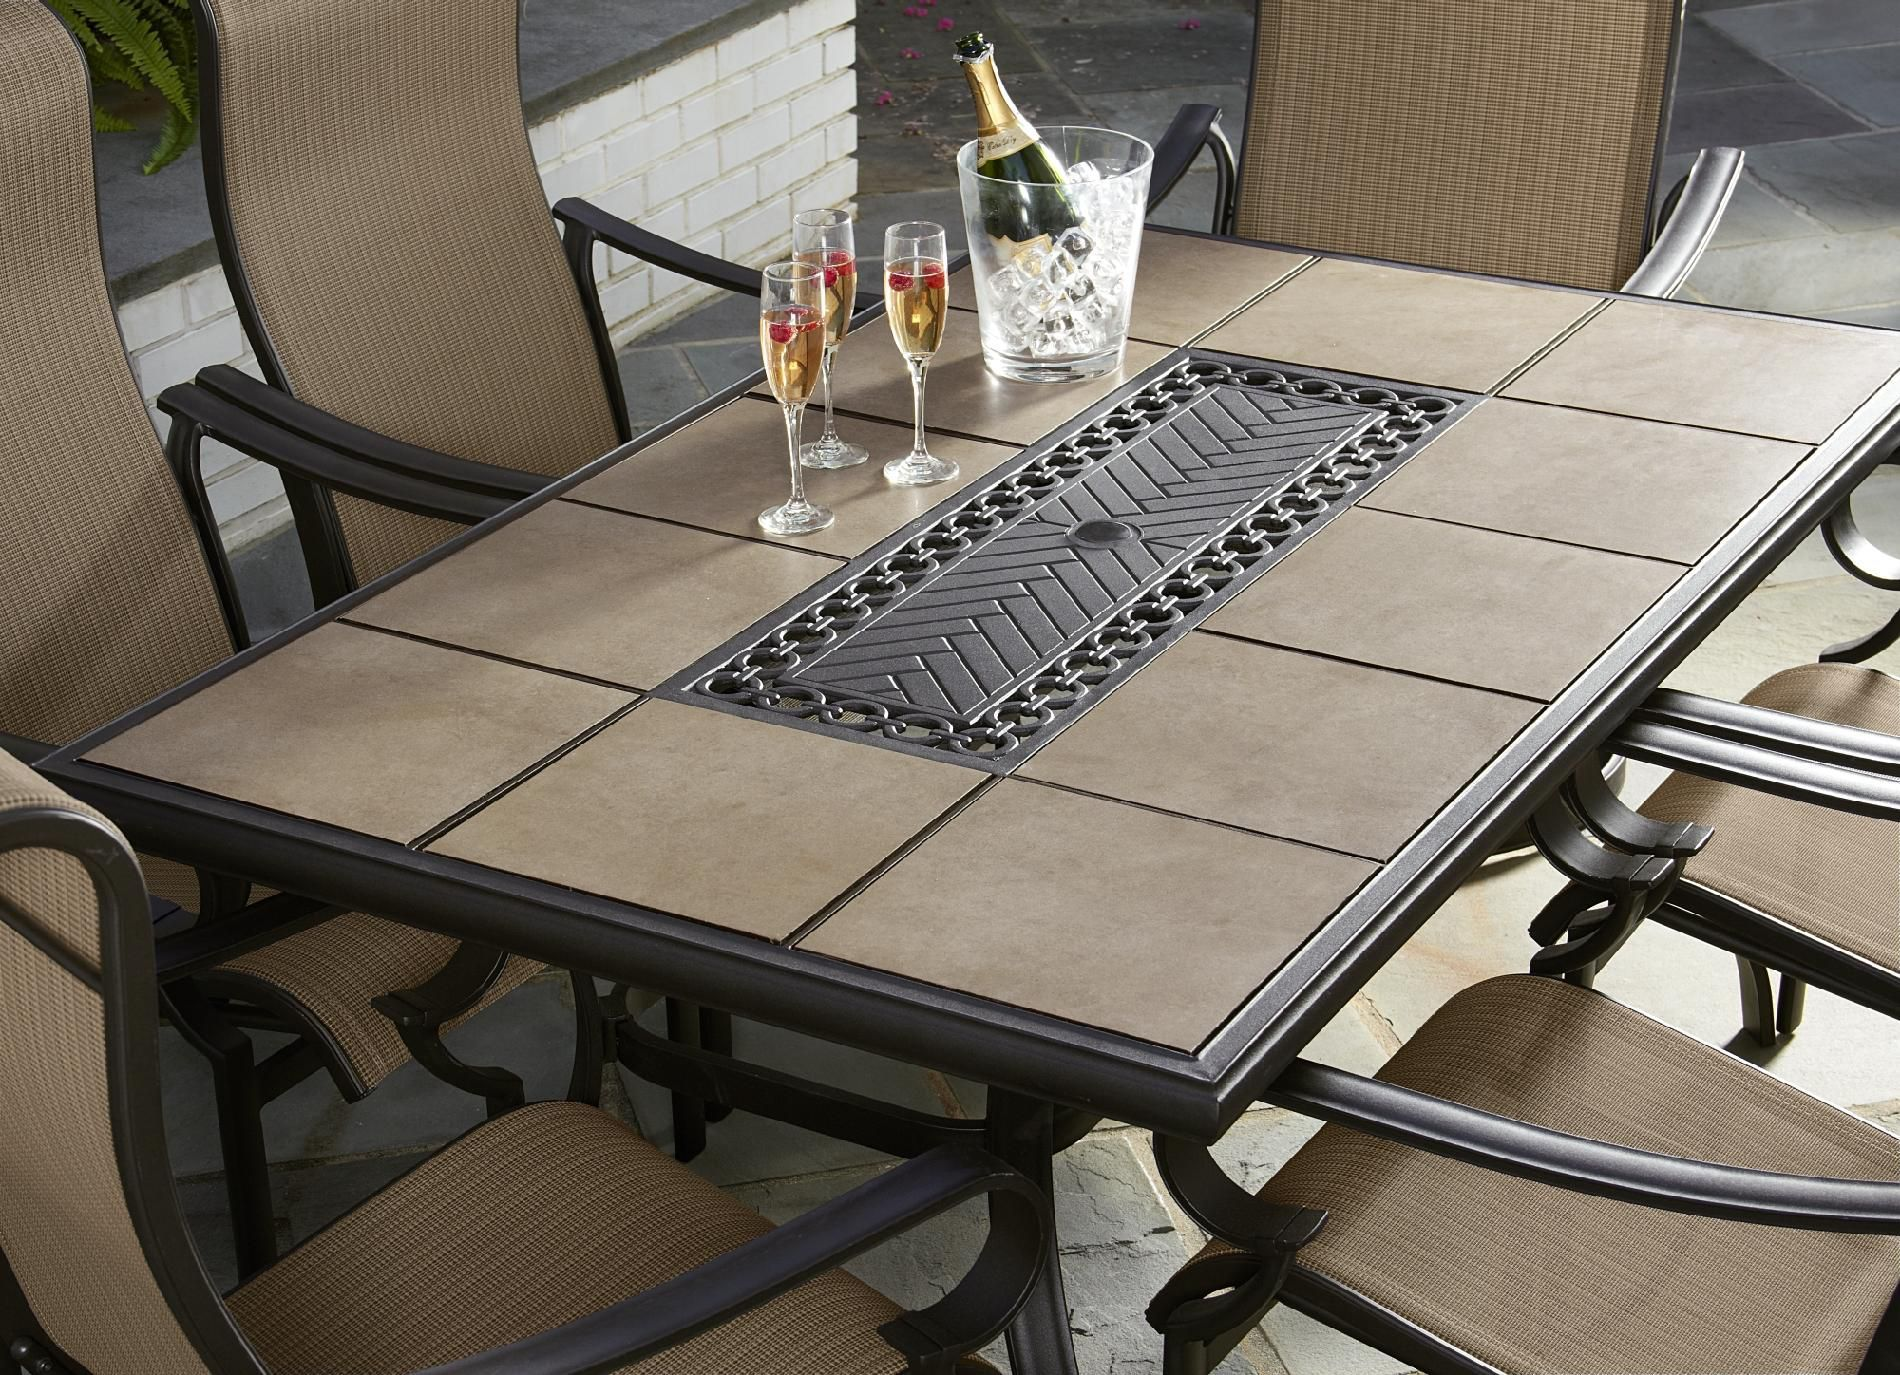 Kmart Jaclyn Smith Brookner Dining Table Item 028W005232076001